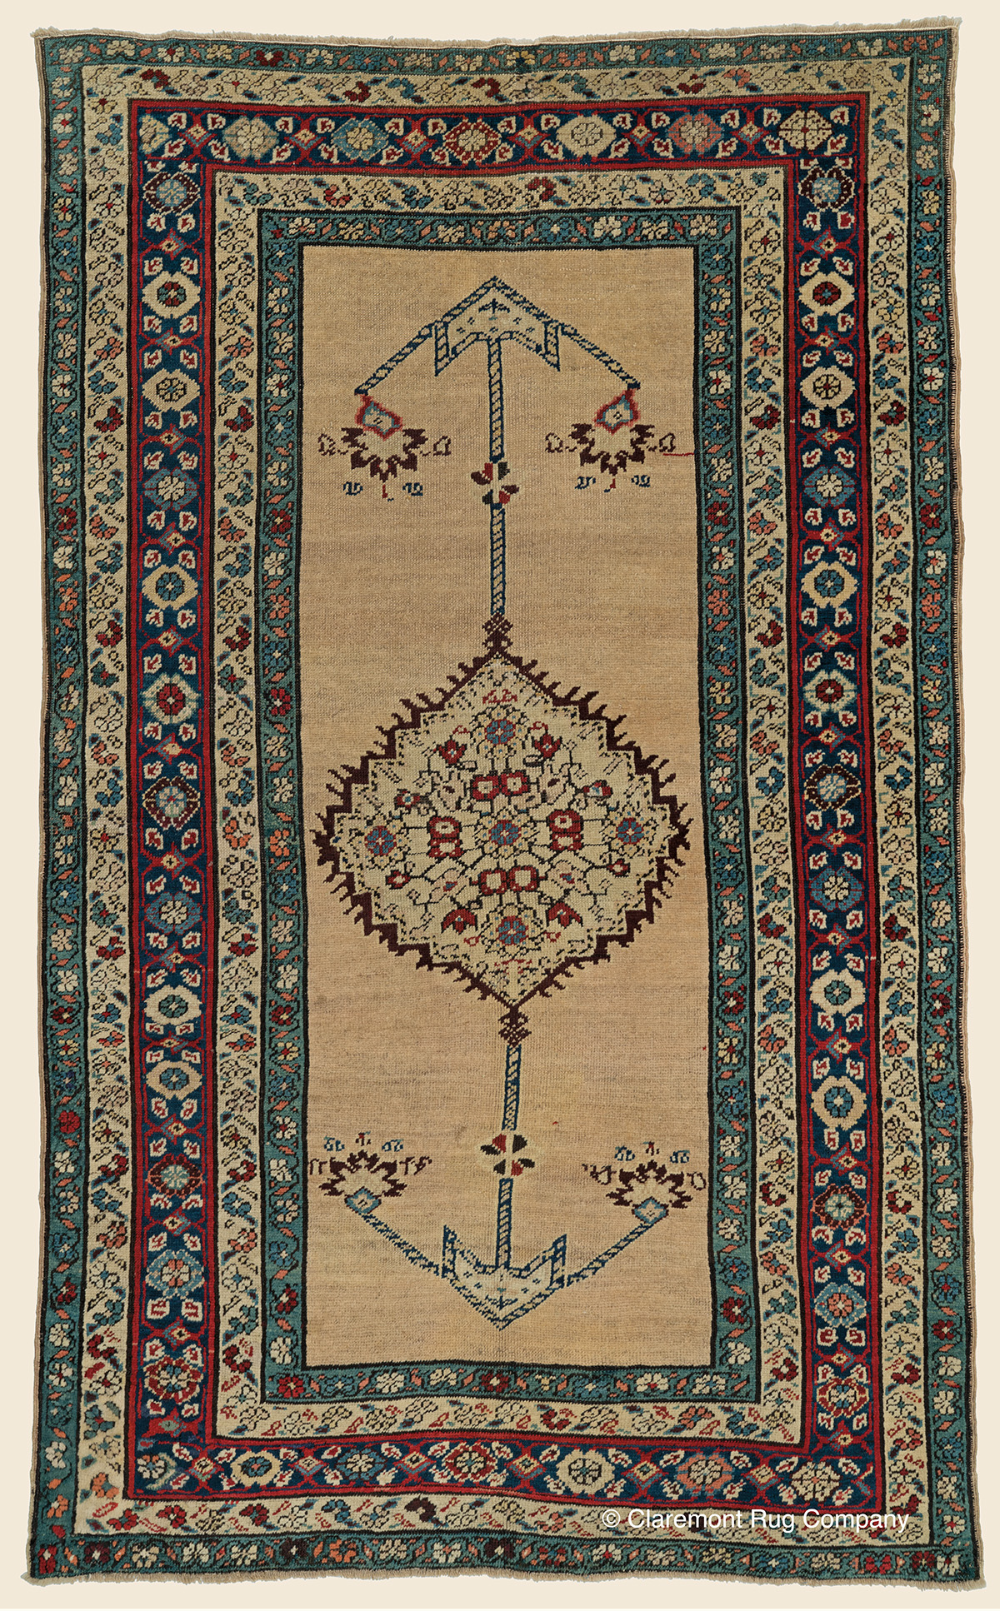 Antique Northwest Persian Serab Camelhair 4ft 1in X 6ft 9in With Elongated Abrash Camelhair Field Antique Rug Claremo In 2020 Claremont Rug Company Rug Company Rugs